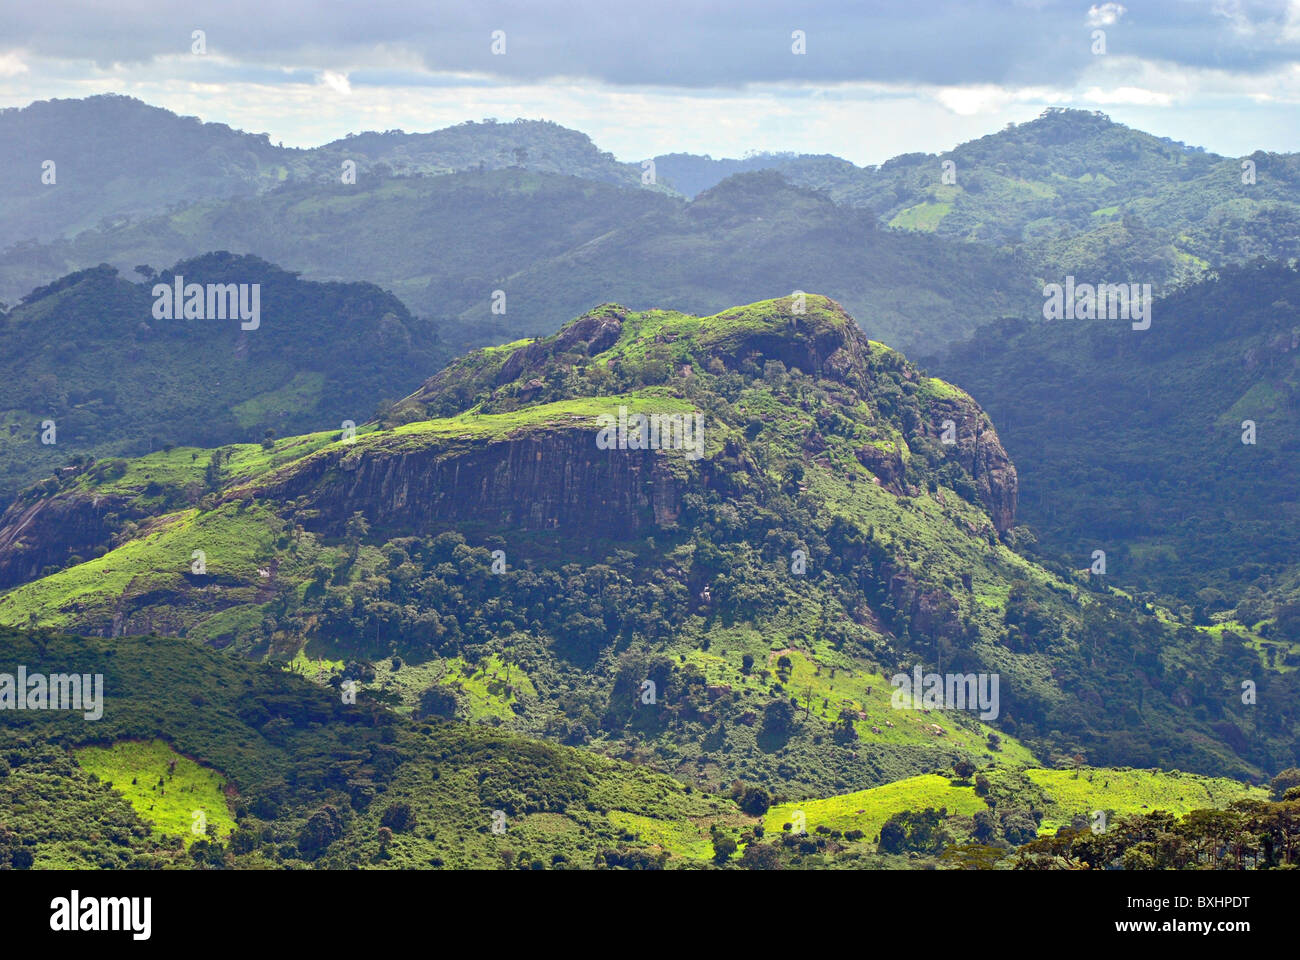 Rugged landscape near man ivory coast west africa stock for Nearby landscapers